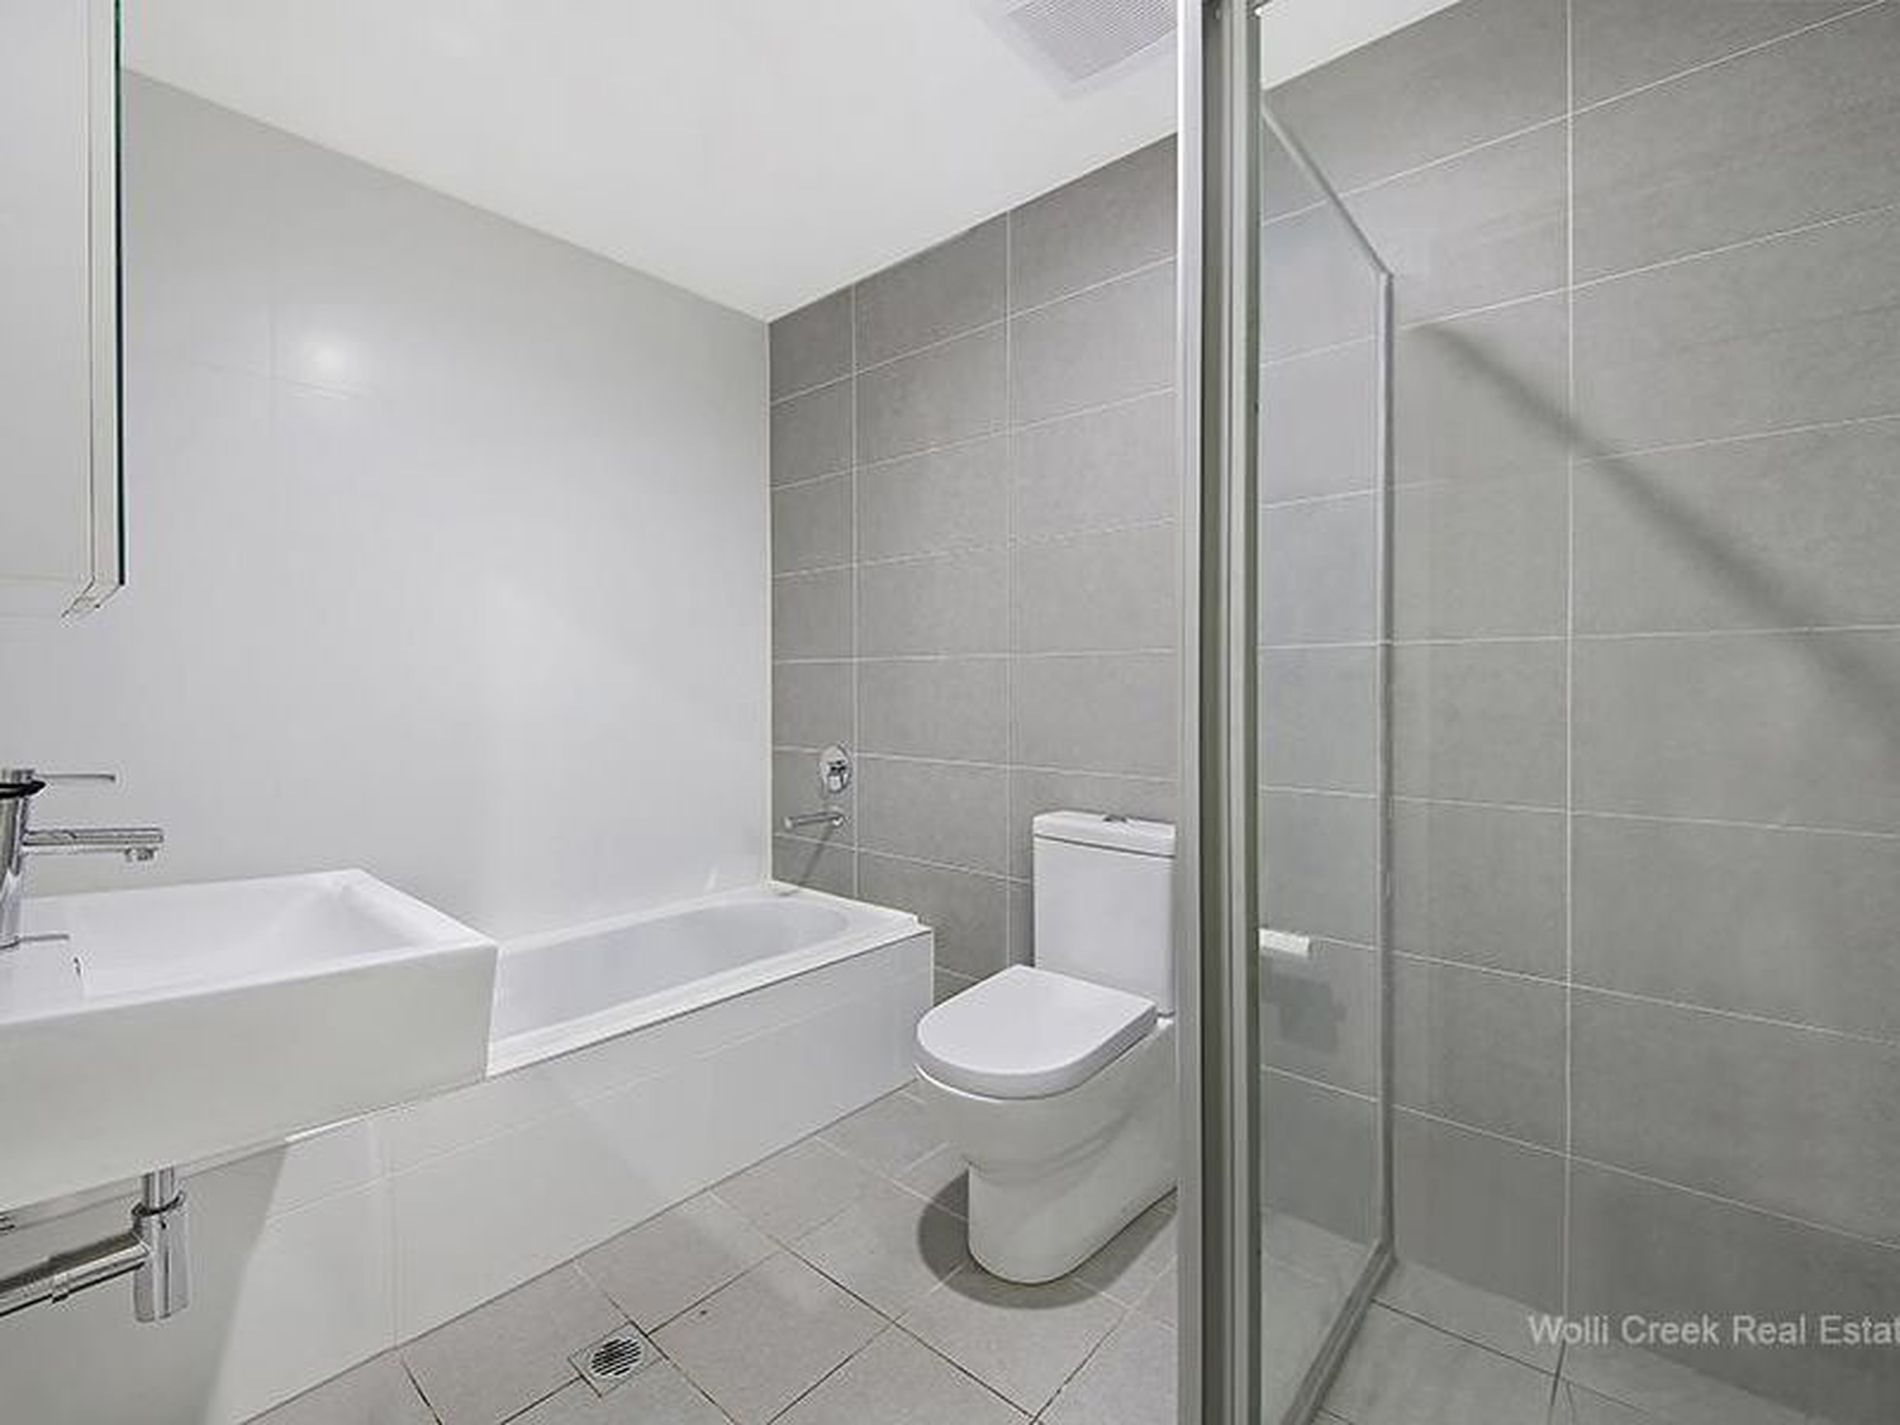 B61 / 1-5 Gertrude Street, Wolli Creek